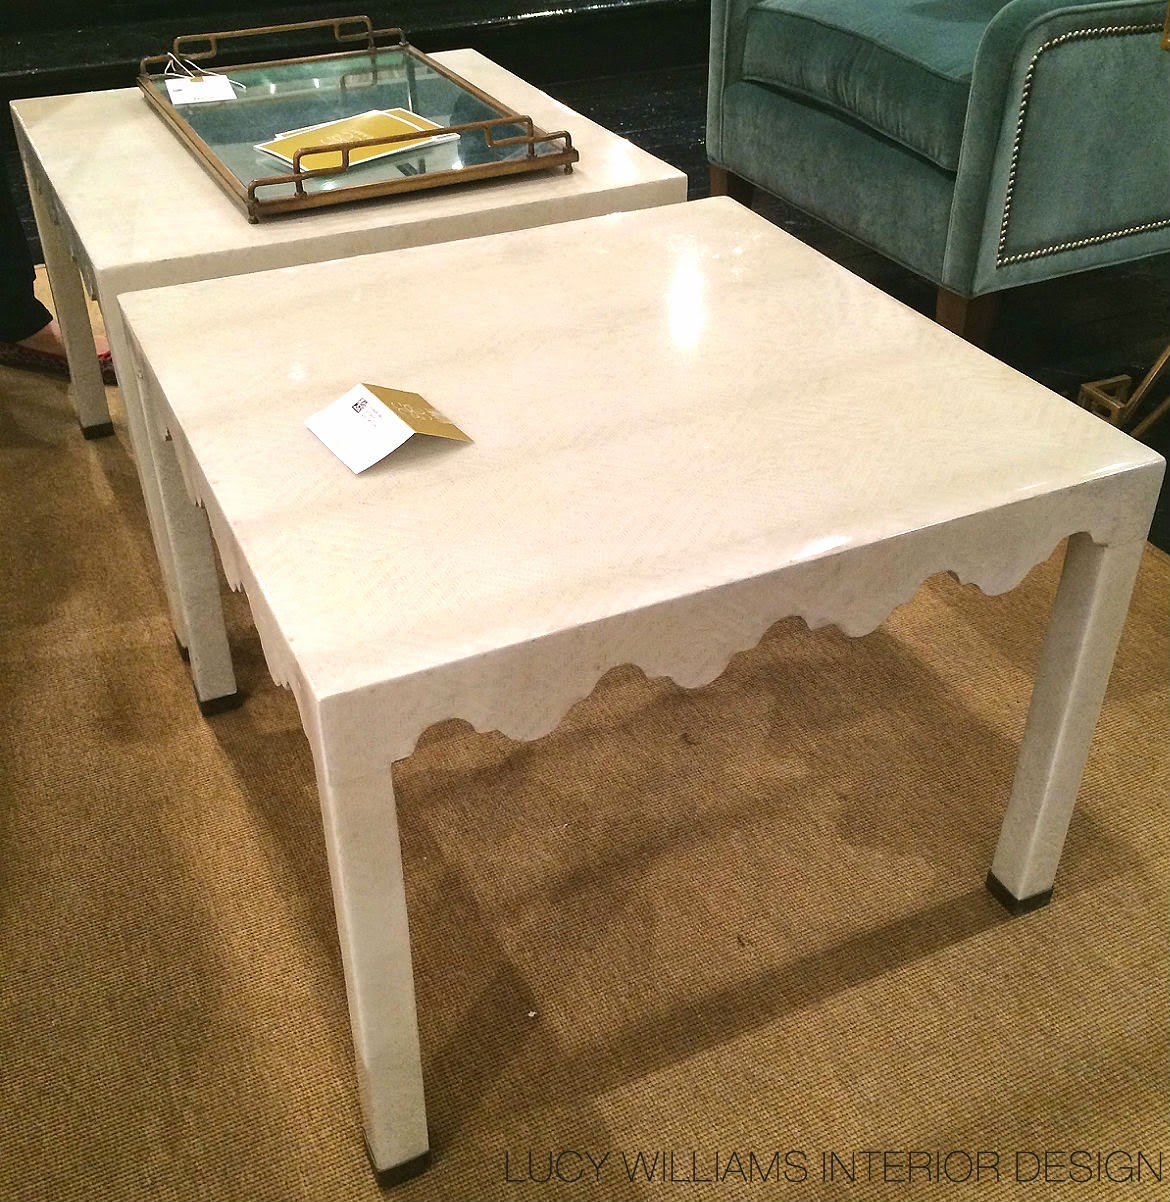 Lucy Mirrored Coffee Table: LUCY WILLIAMS INTERIOR DESIGN BLOG: HIGH POINT HEAVEN